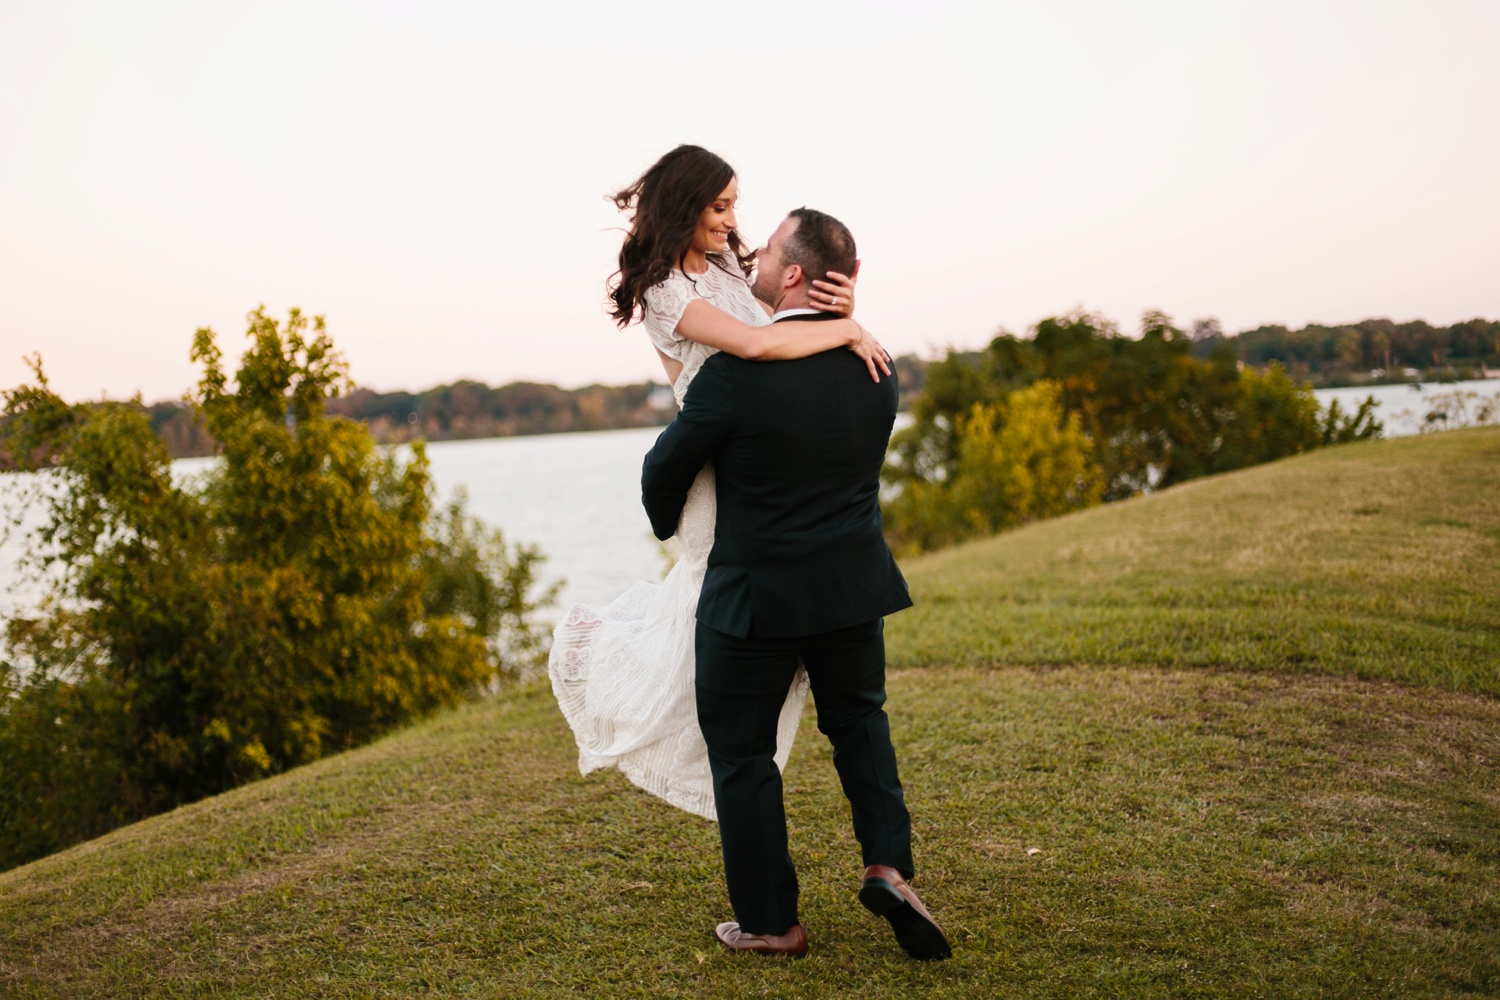 Kadee + Tyler | a raw, emotional wedding at the Filter Building on White Rock Lake in Dallas, TX by North Texas Wedding Photographer, Rachel Meagan Photography 183